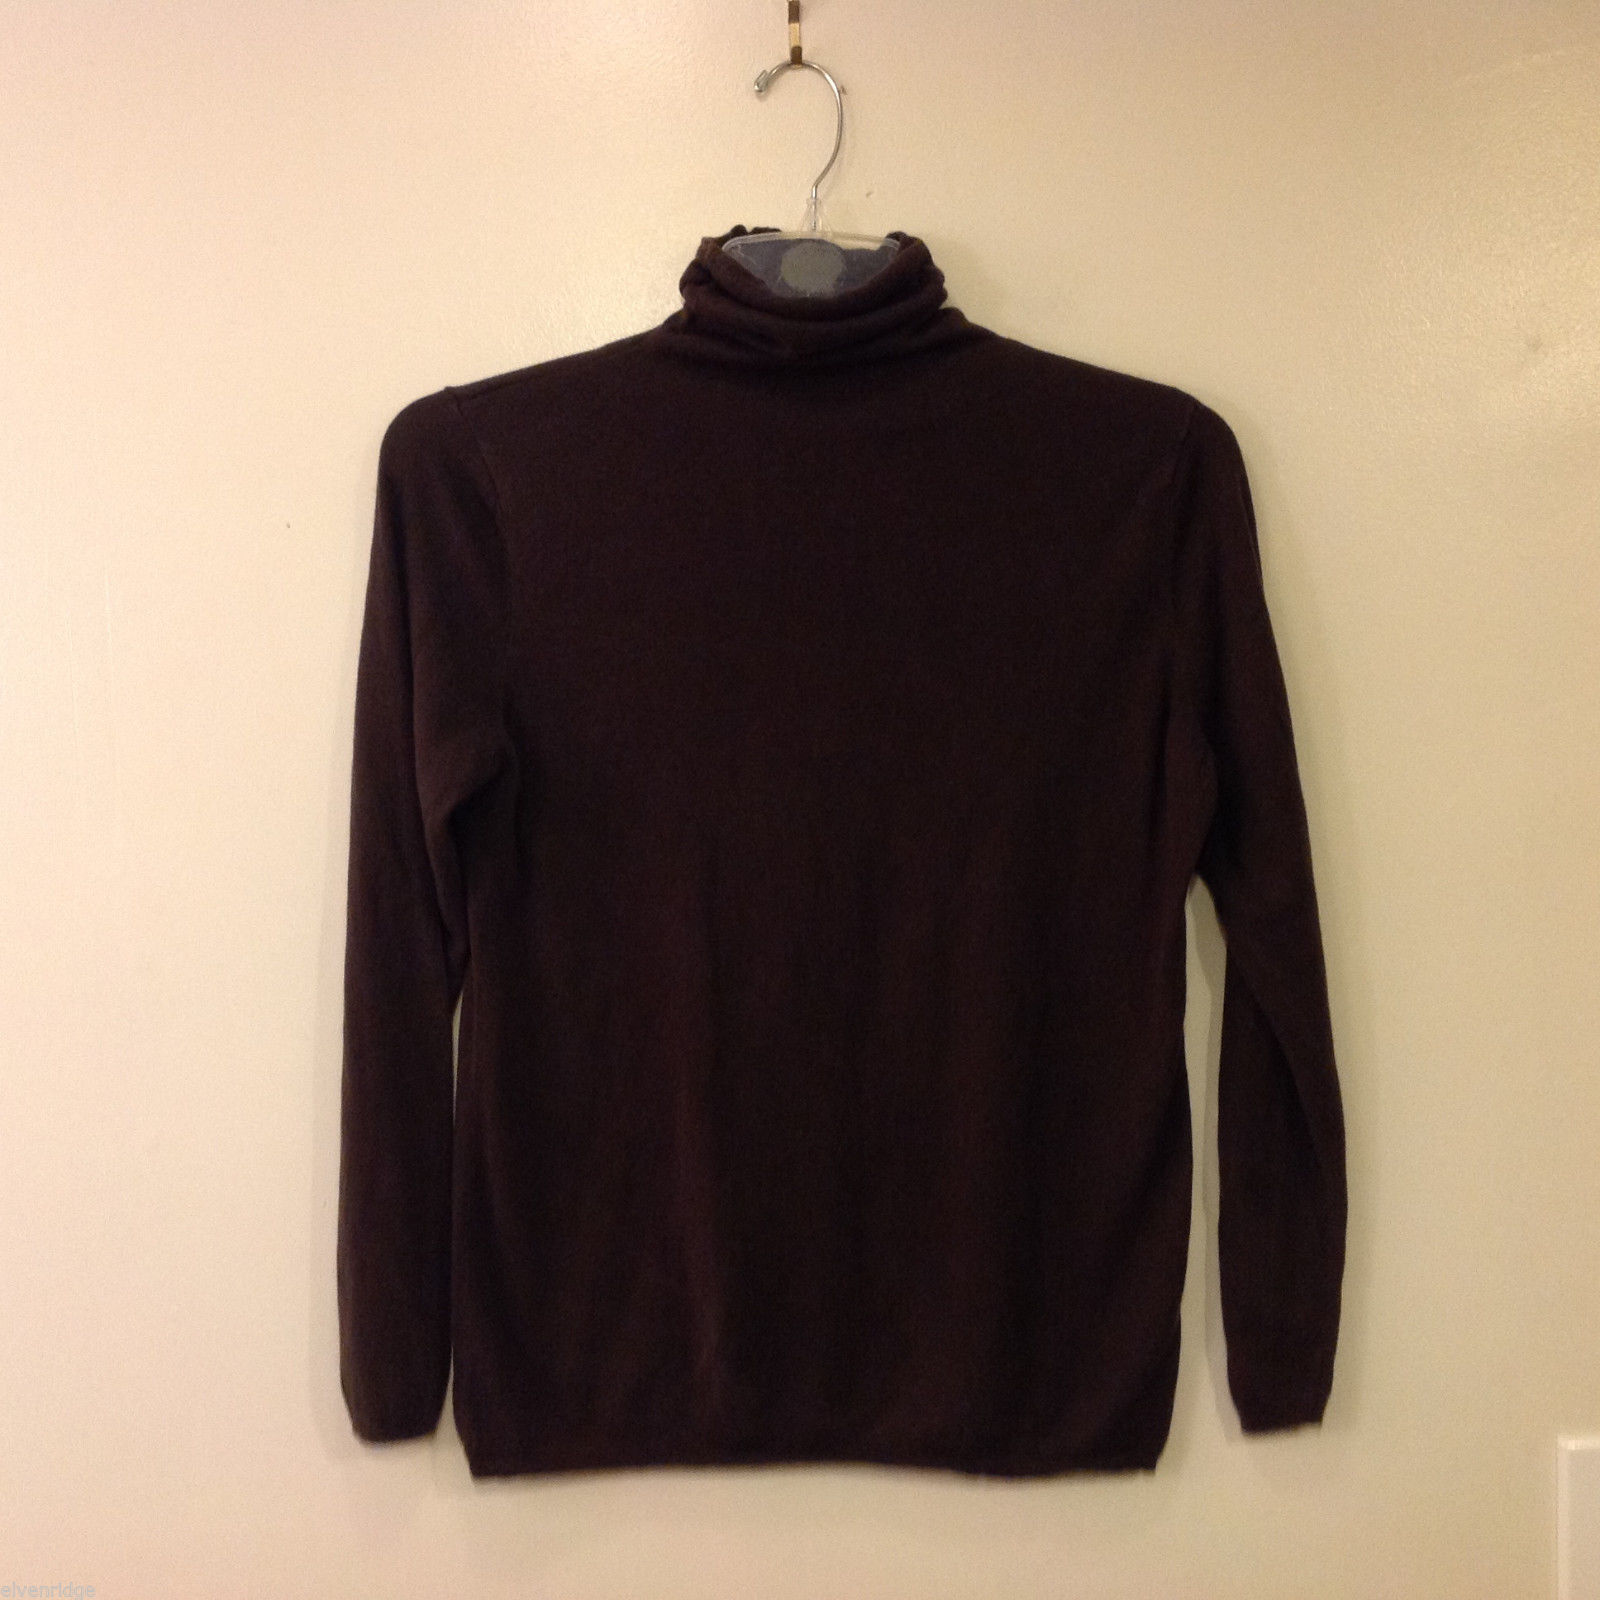 Chico's Women's Size L Turtleneck Silk Cashmere Blend Sweater Chocolate Brown